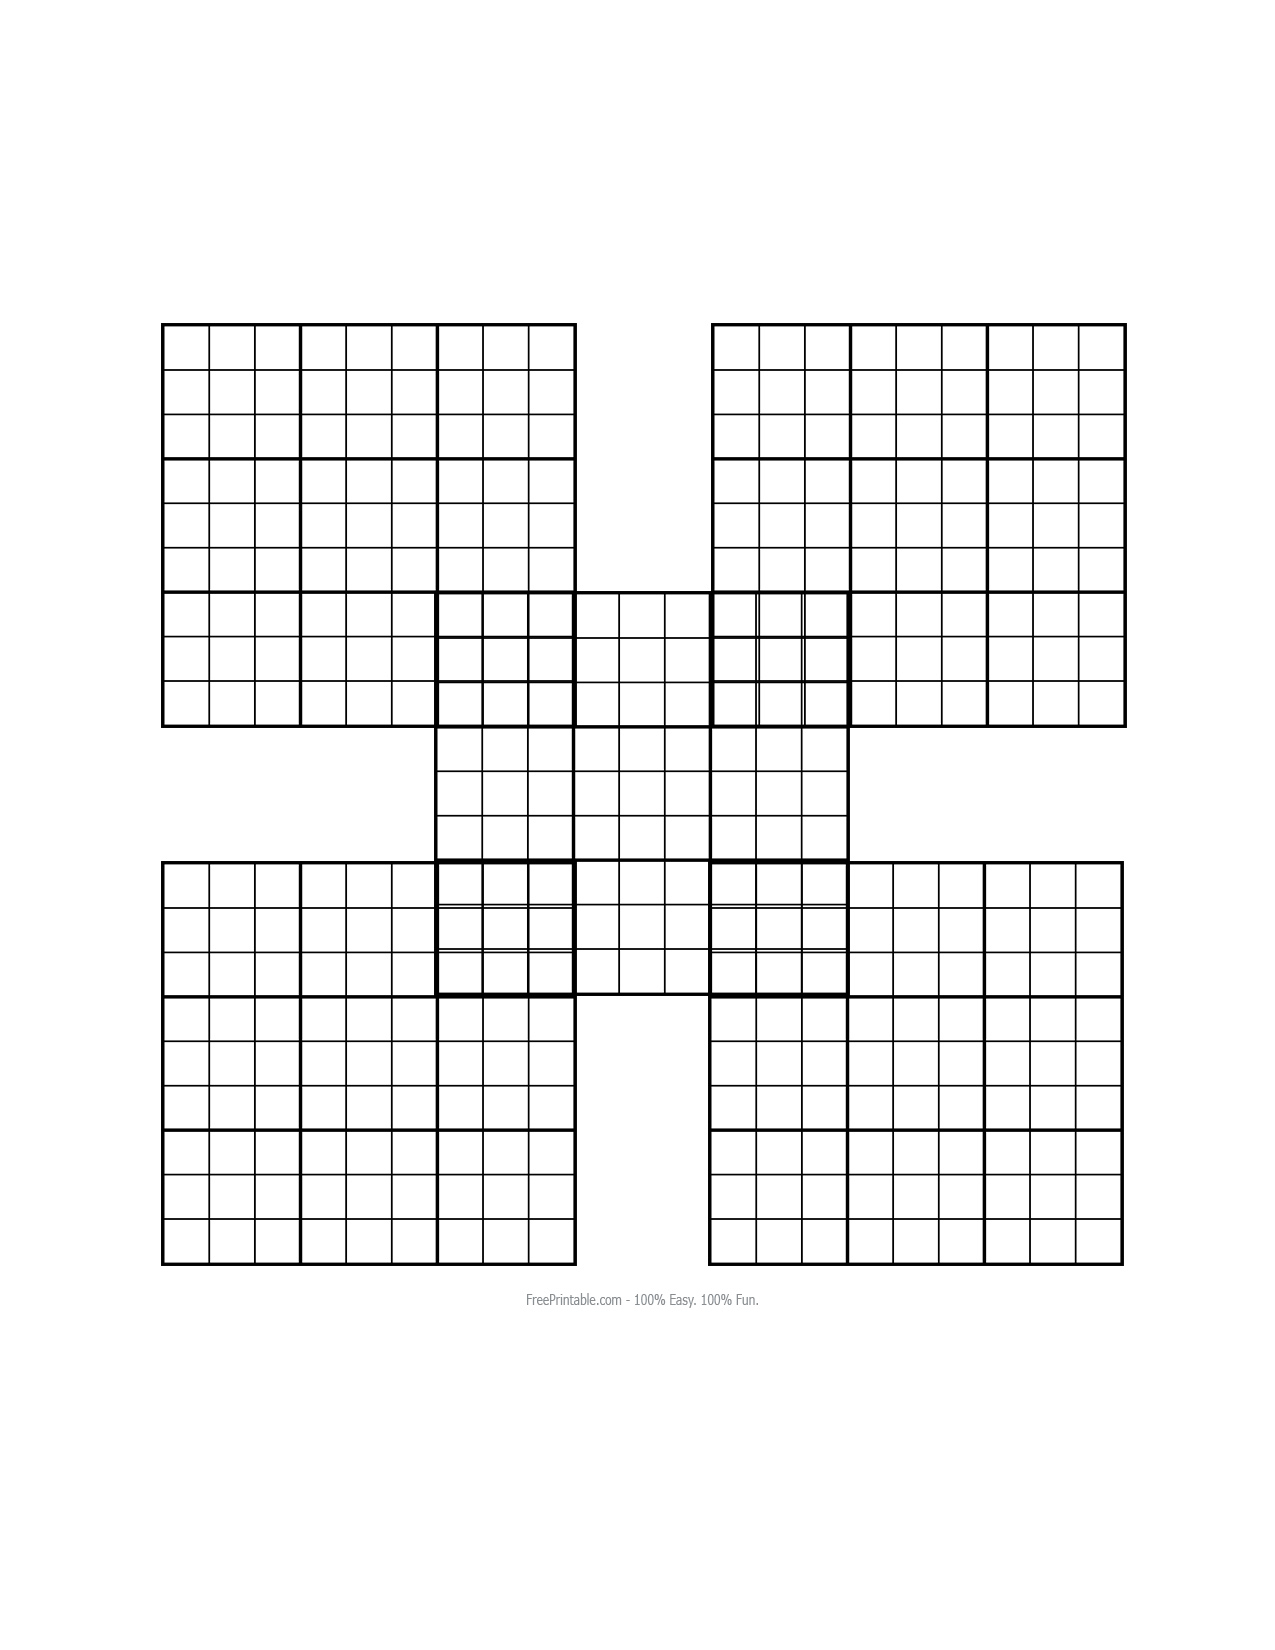 3 Best Images Of Printable Blank Sudoku Grid